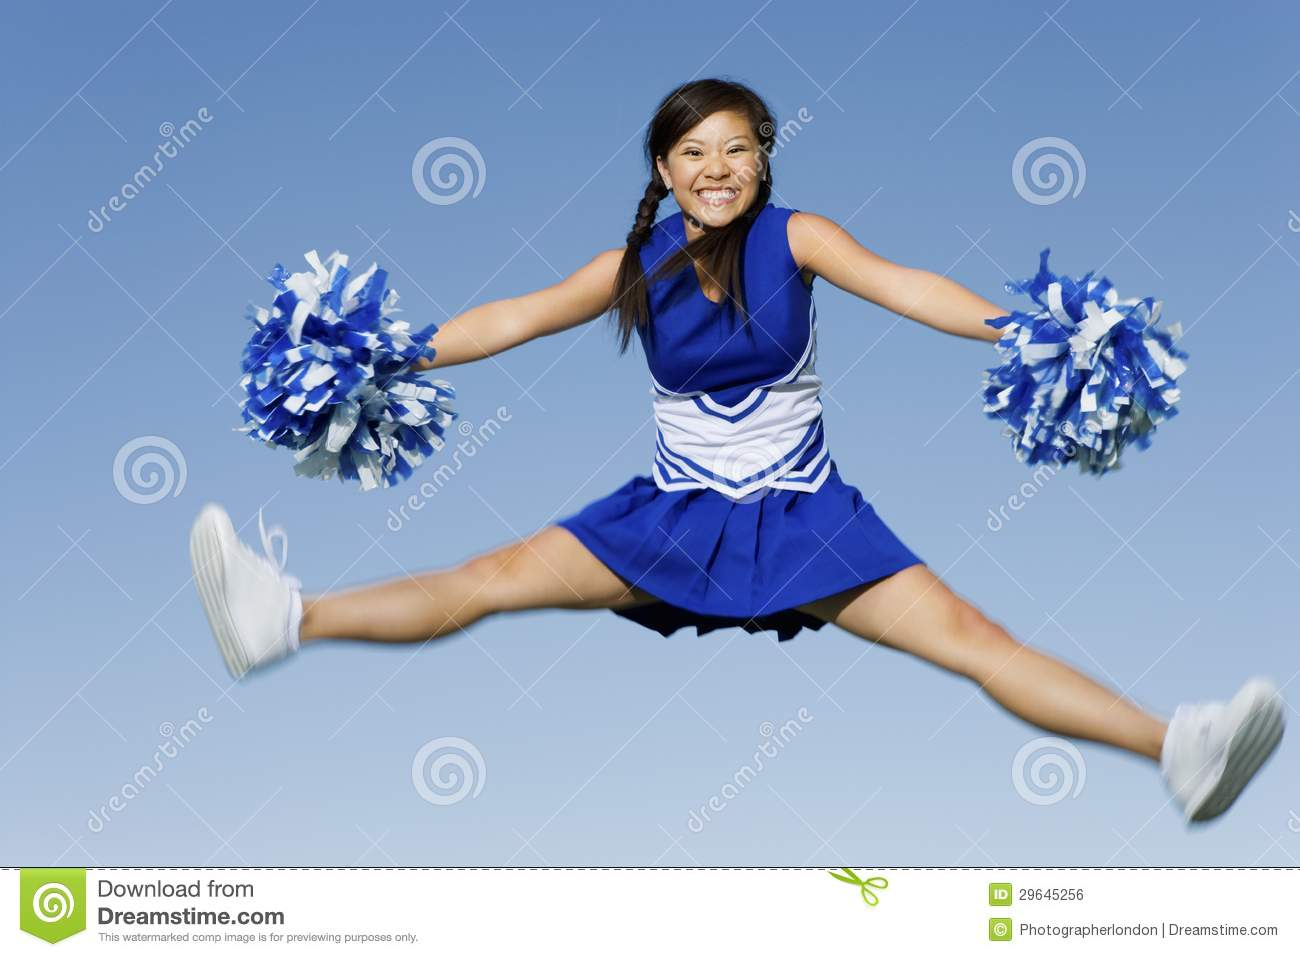 cheerleader jumping with pom poms stock photo image of ecstatic beauty 29645256. Black Bedroom Furniture Sets. Home Design Ideas